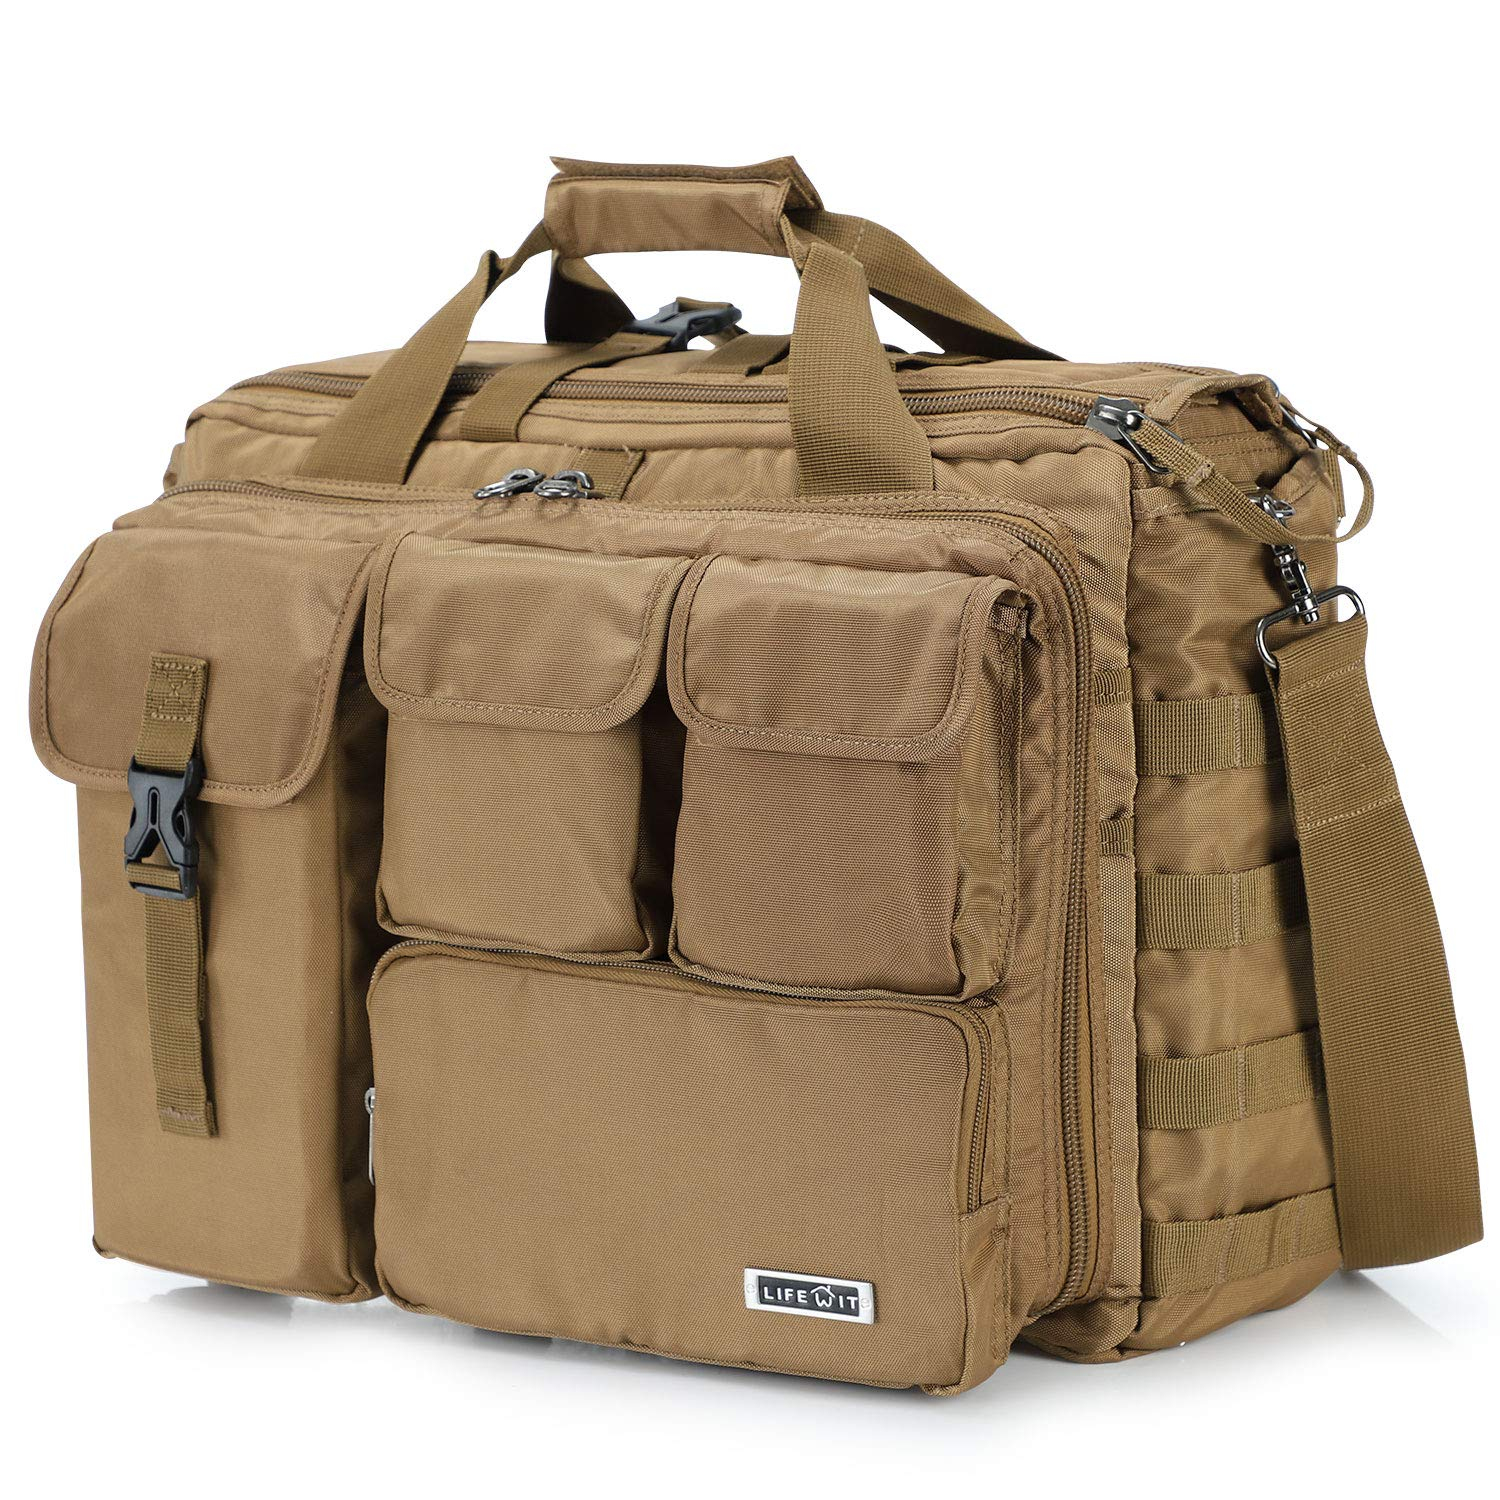 Lifewit 17'' Men's Military Laptop Messenger Bag Multifunction Tactical Briefcase Computer Shoulder Handbags by Lifewit